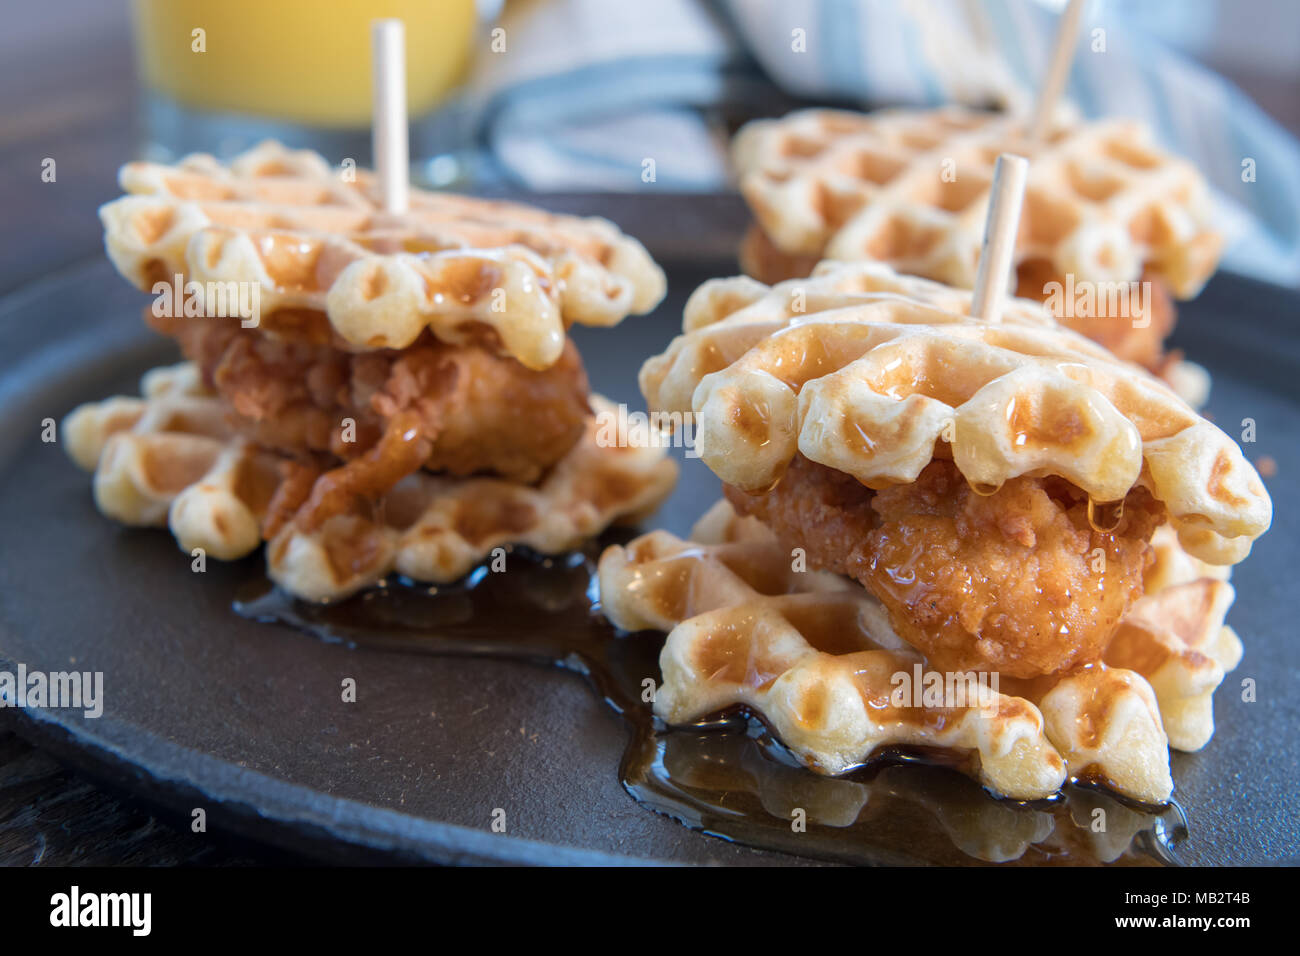 Three Chicken And Waffle Sliders with Syrup on cast iron skillet - Stock Image